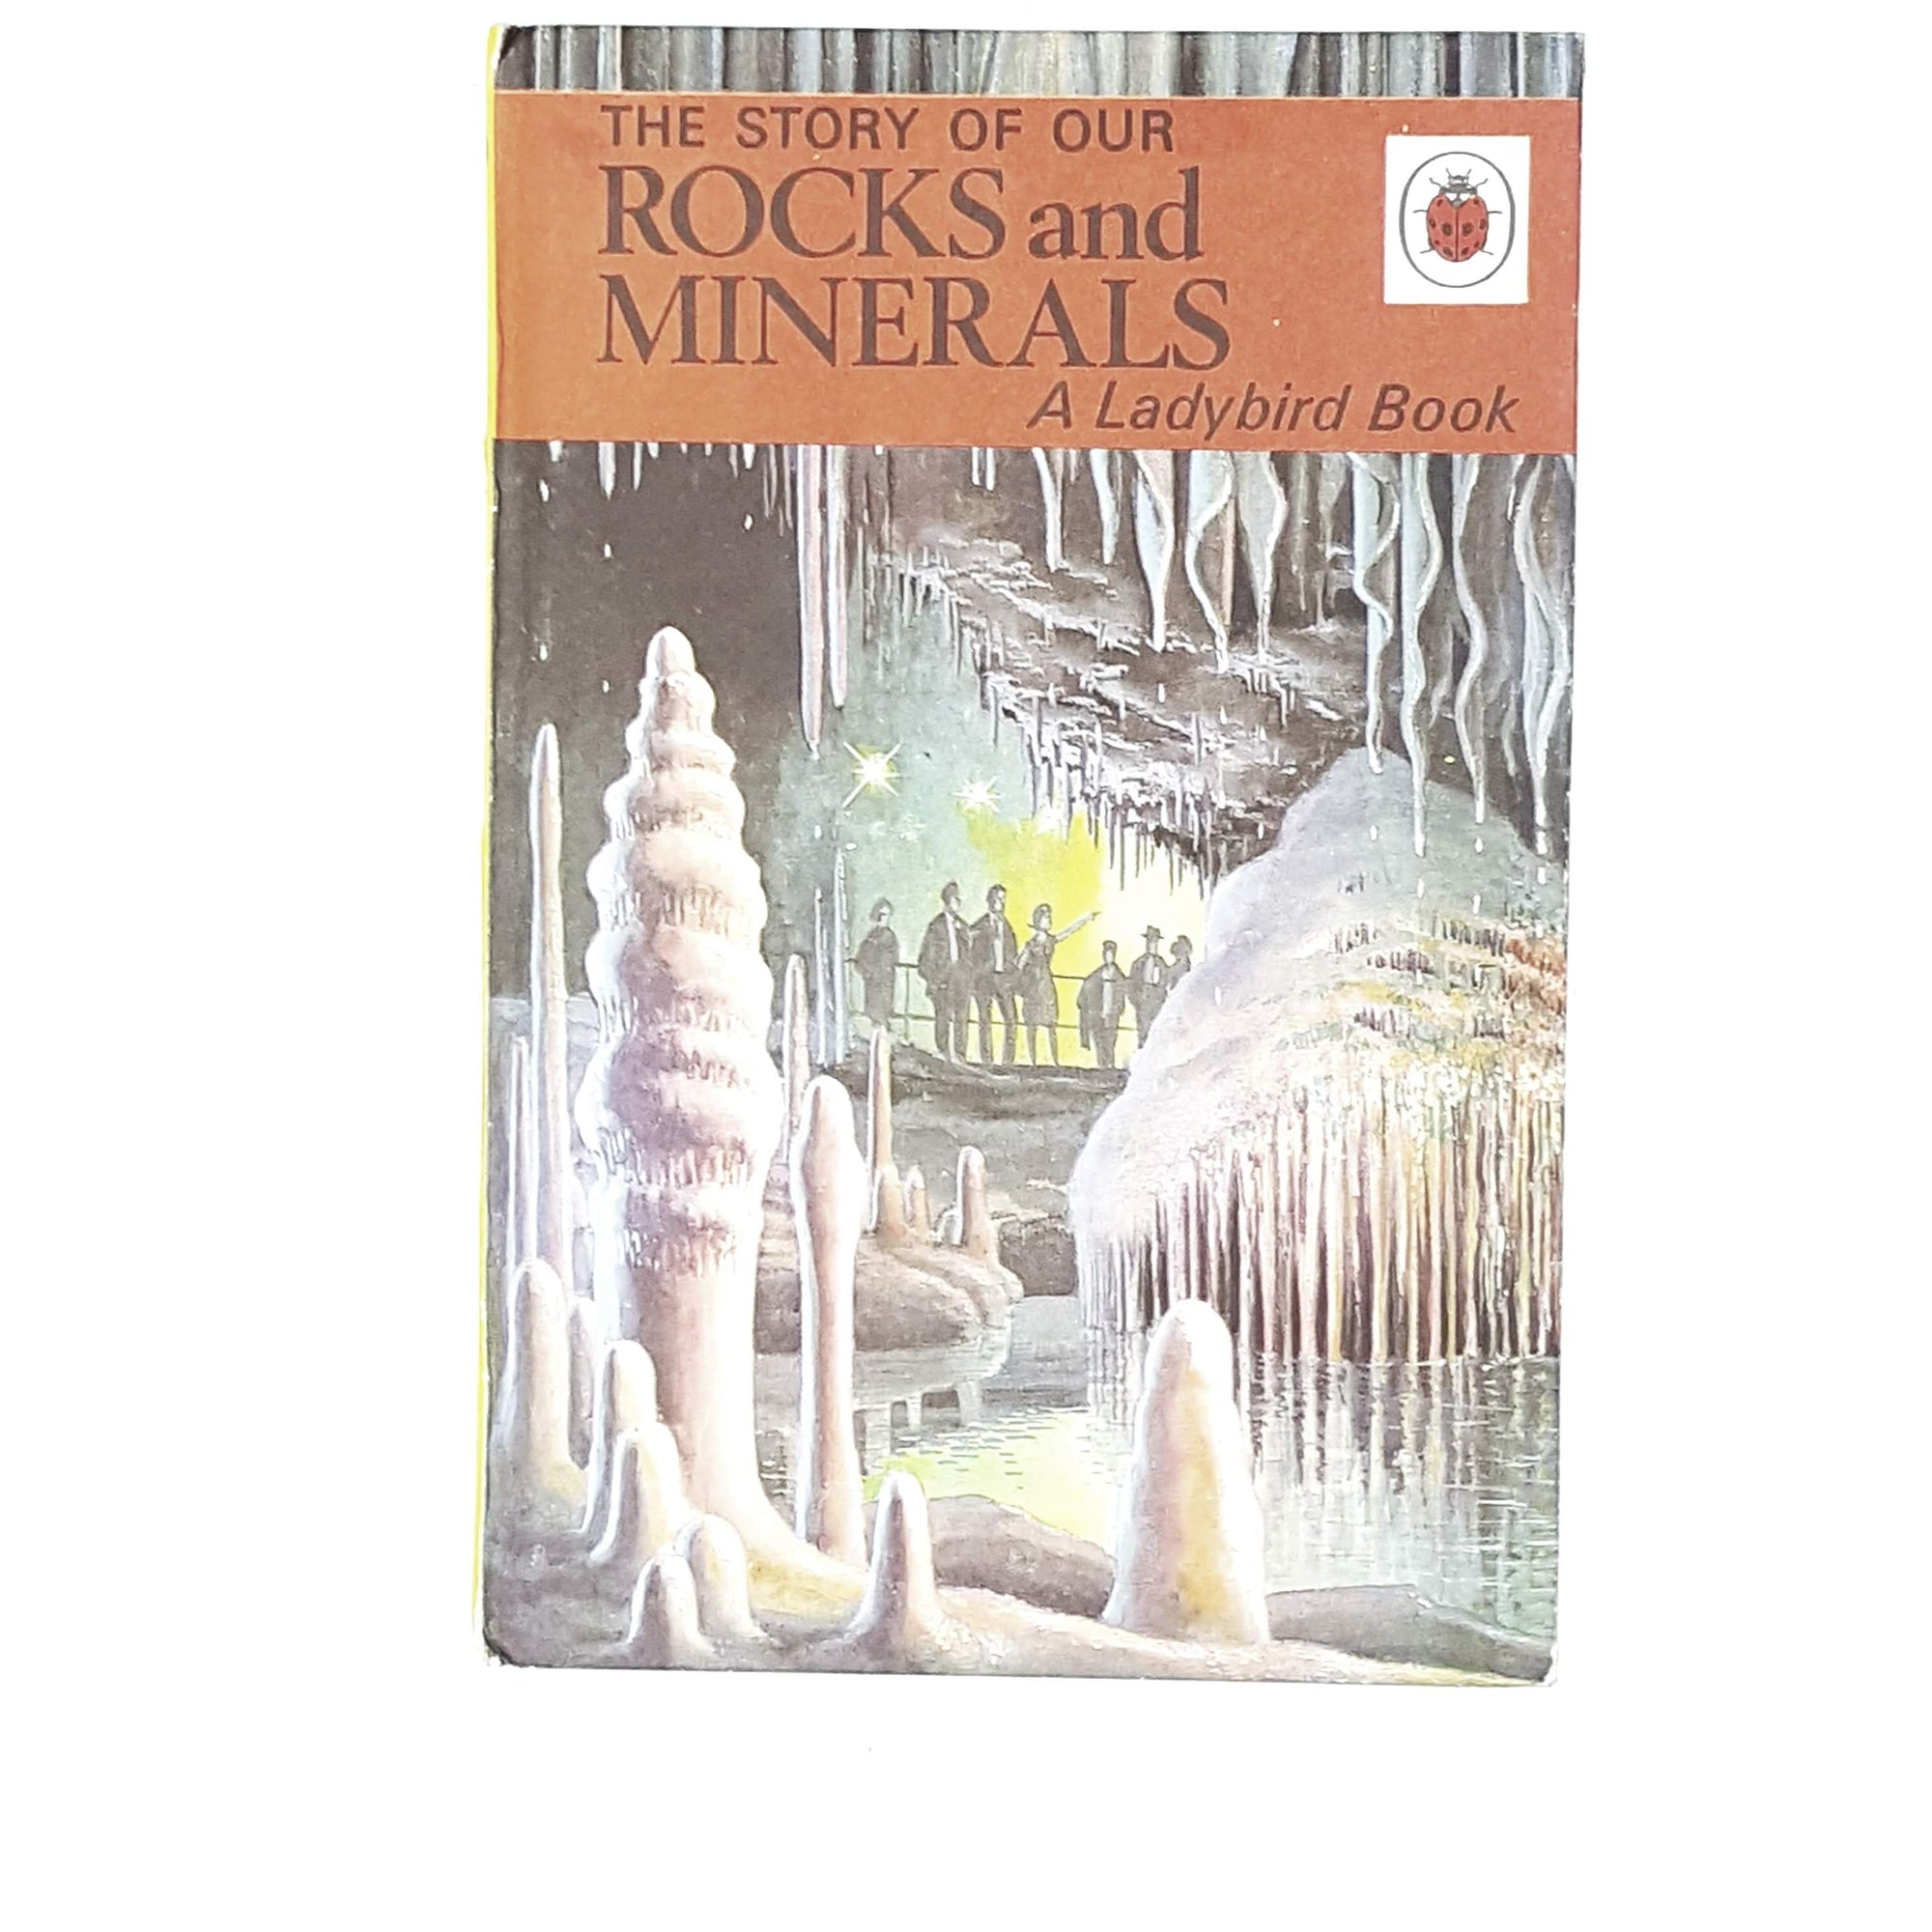 Vintage Ladybird: The Story of Our Rocks and Minerals 1966